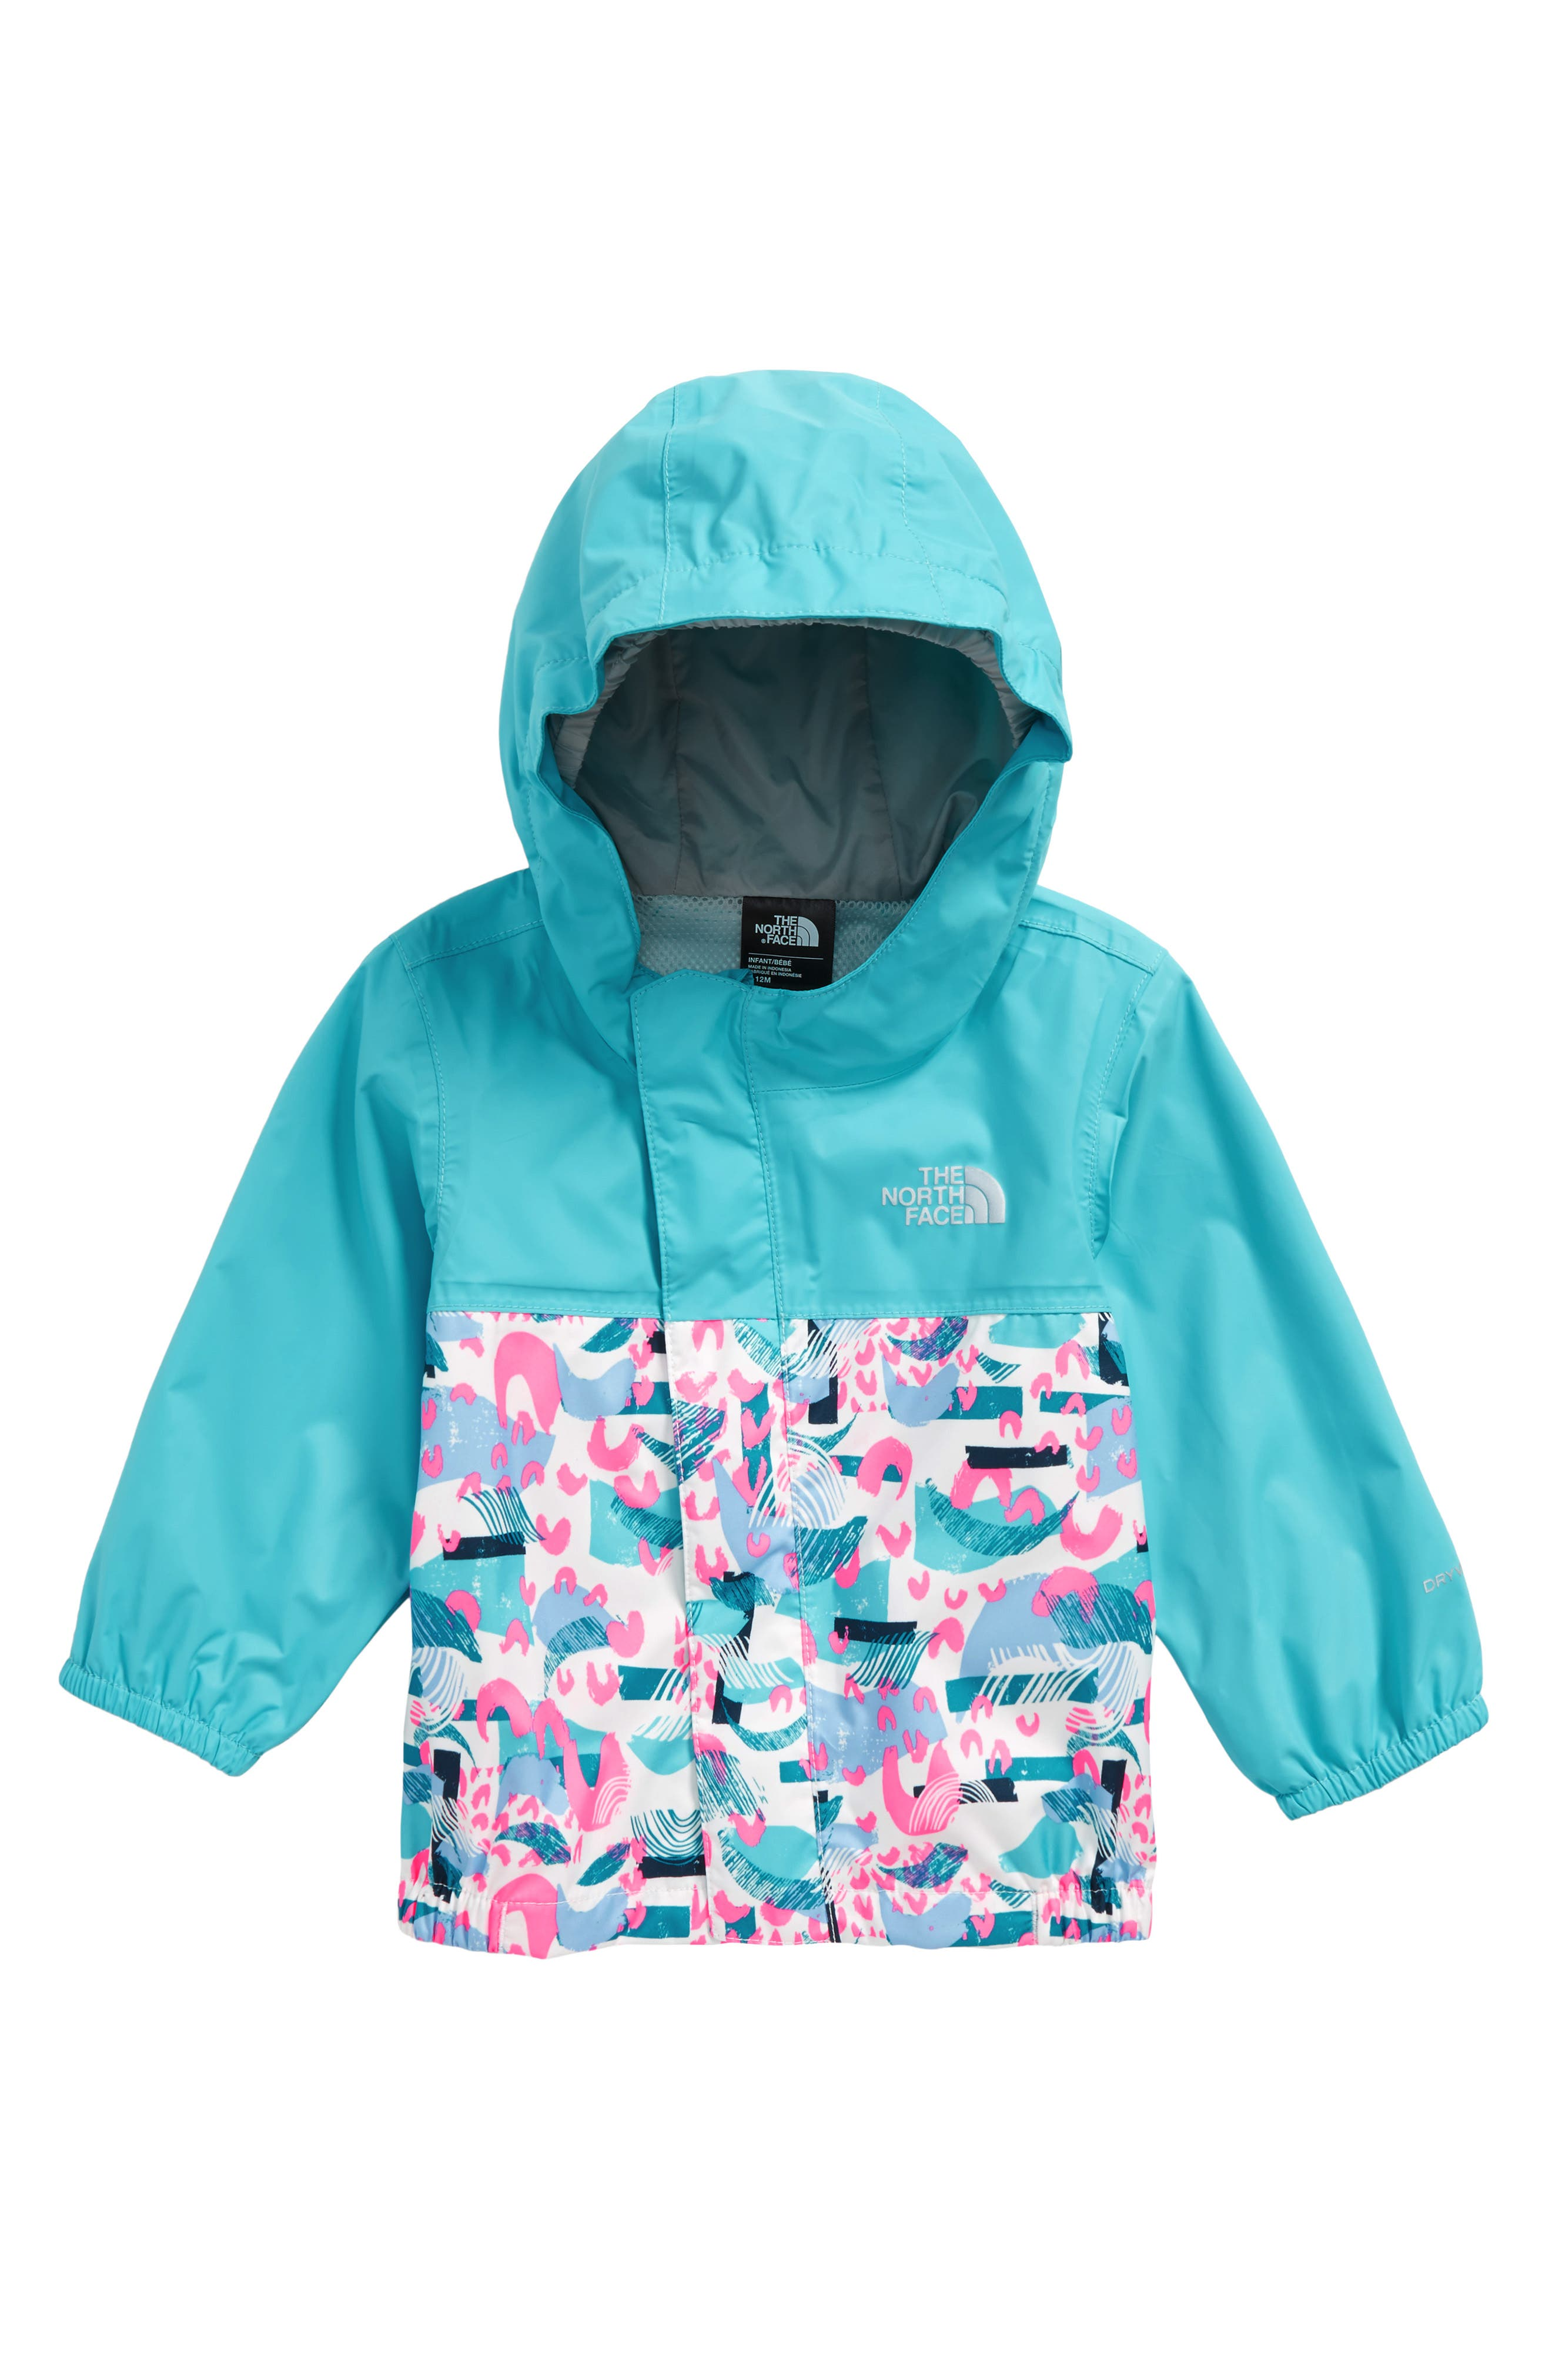 Tailout Hooded Rain Jacket,                         Main,                         color, Blue Curacao